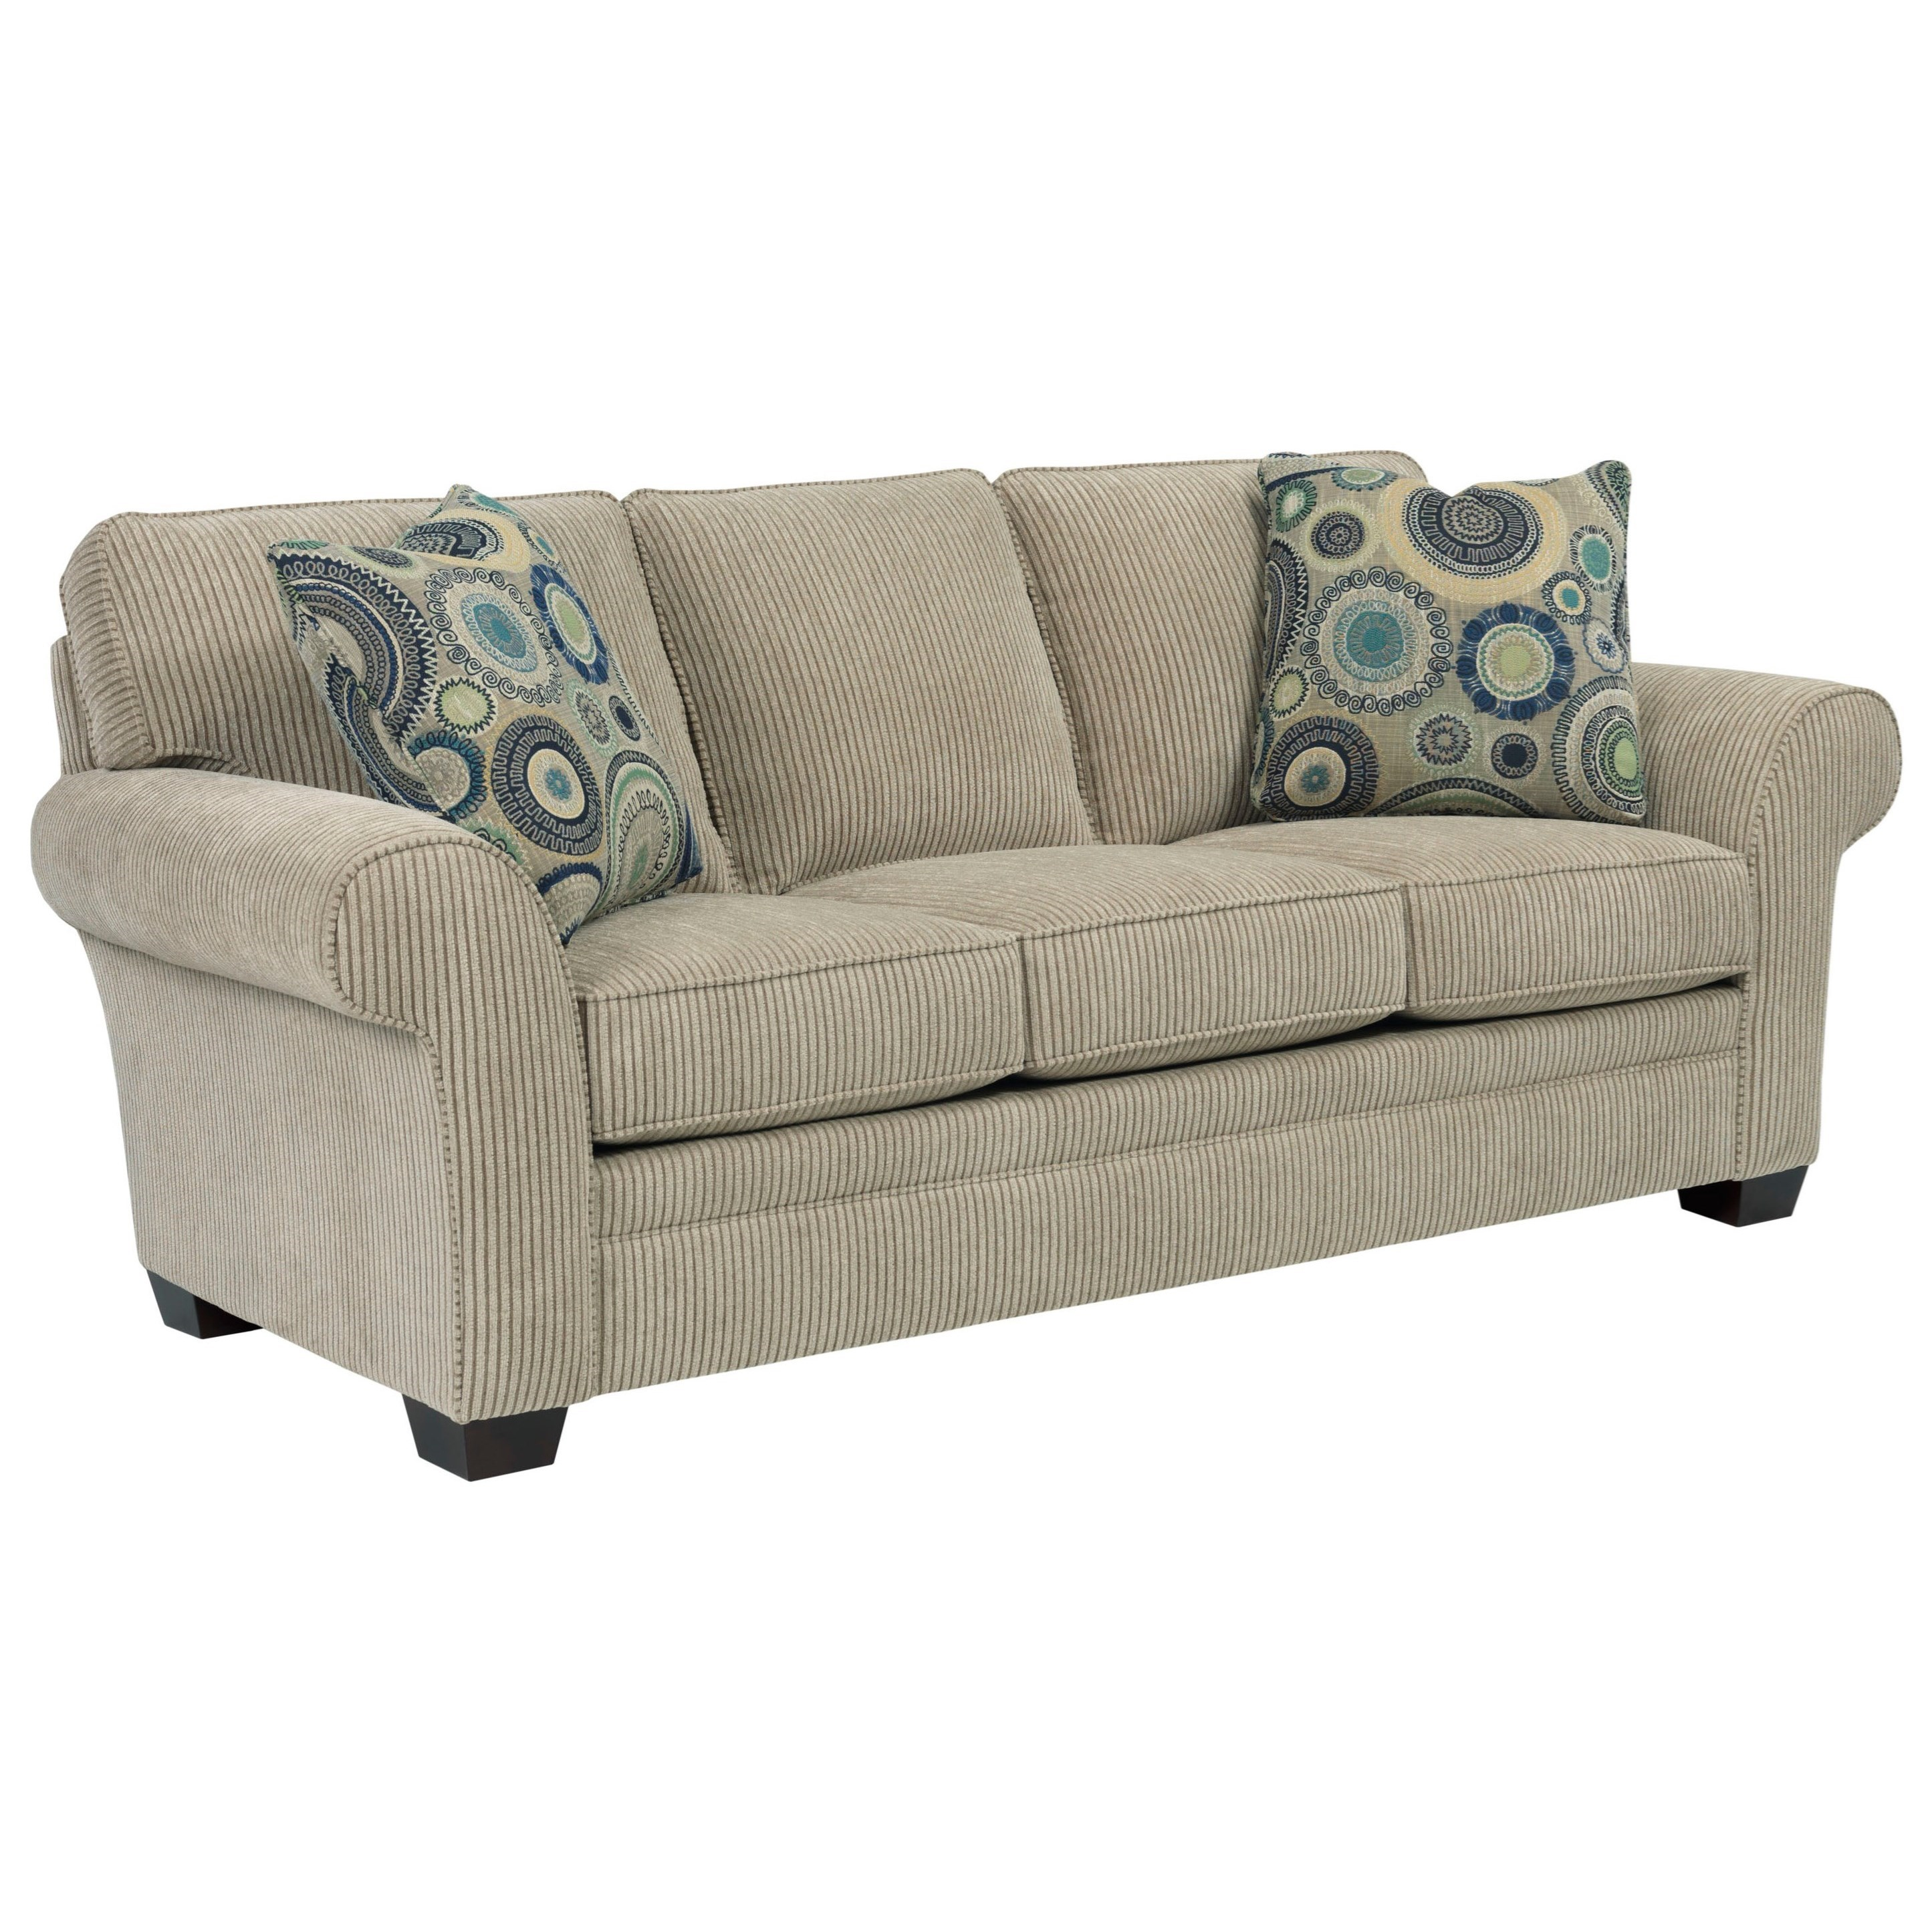 Broyhill Furniture Zachary Upholstered Sofa - Item Number: 7902-3-8785-93